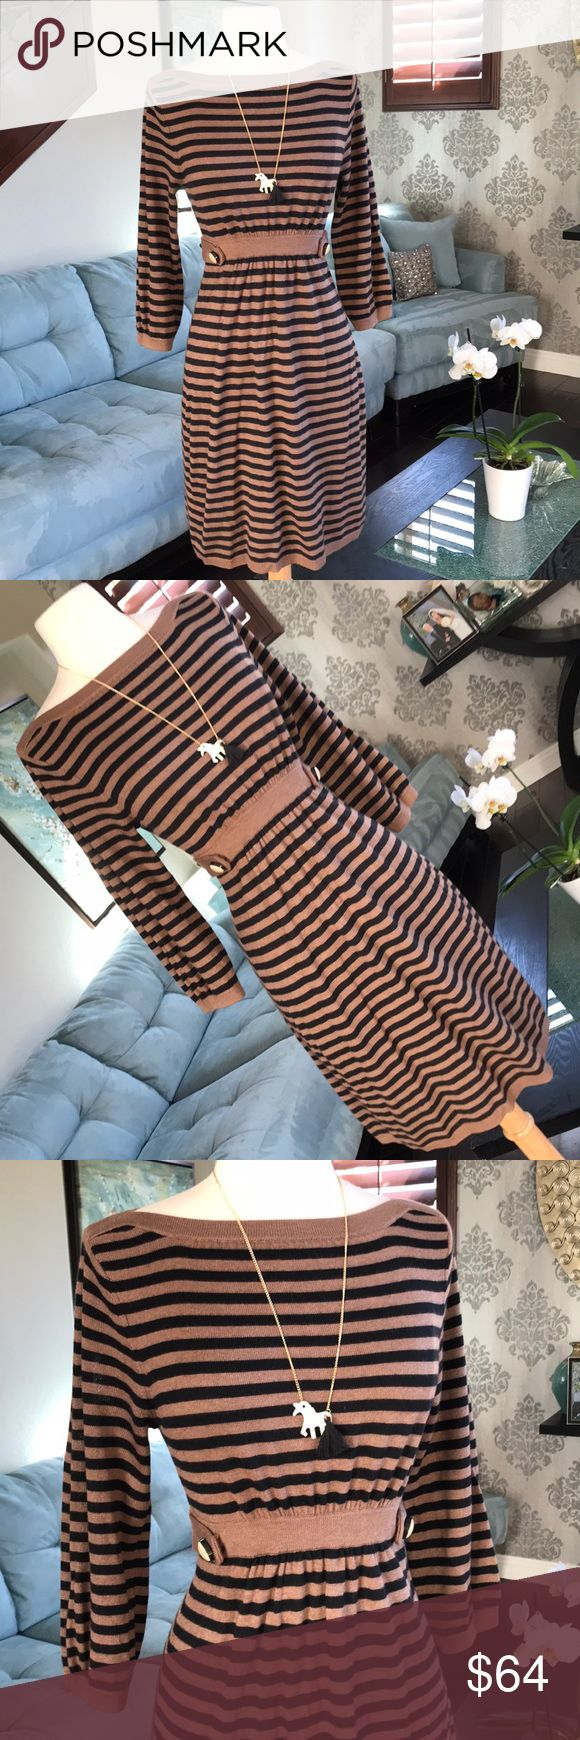 👗🌸Anthropologie adorable cashmere dress ❤️ Gorgeous brown black stripes cashmere silk blend adorable dress by Anthropologie Ella Moss so comfy and cute on with side buttons detail in excellent condition ❤️ Anthropologie Dresses